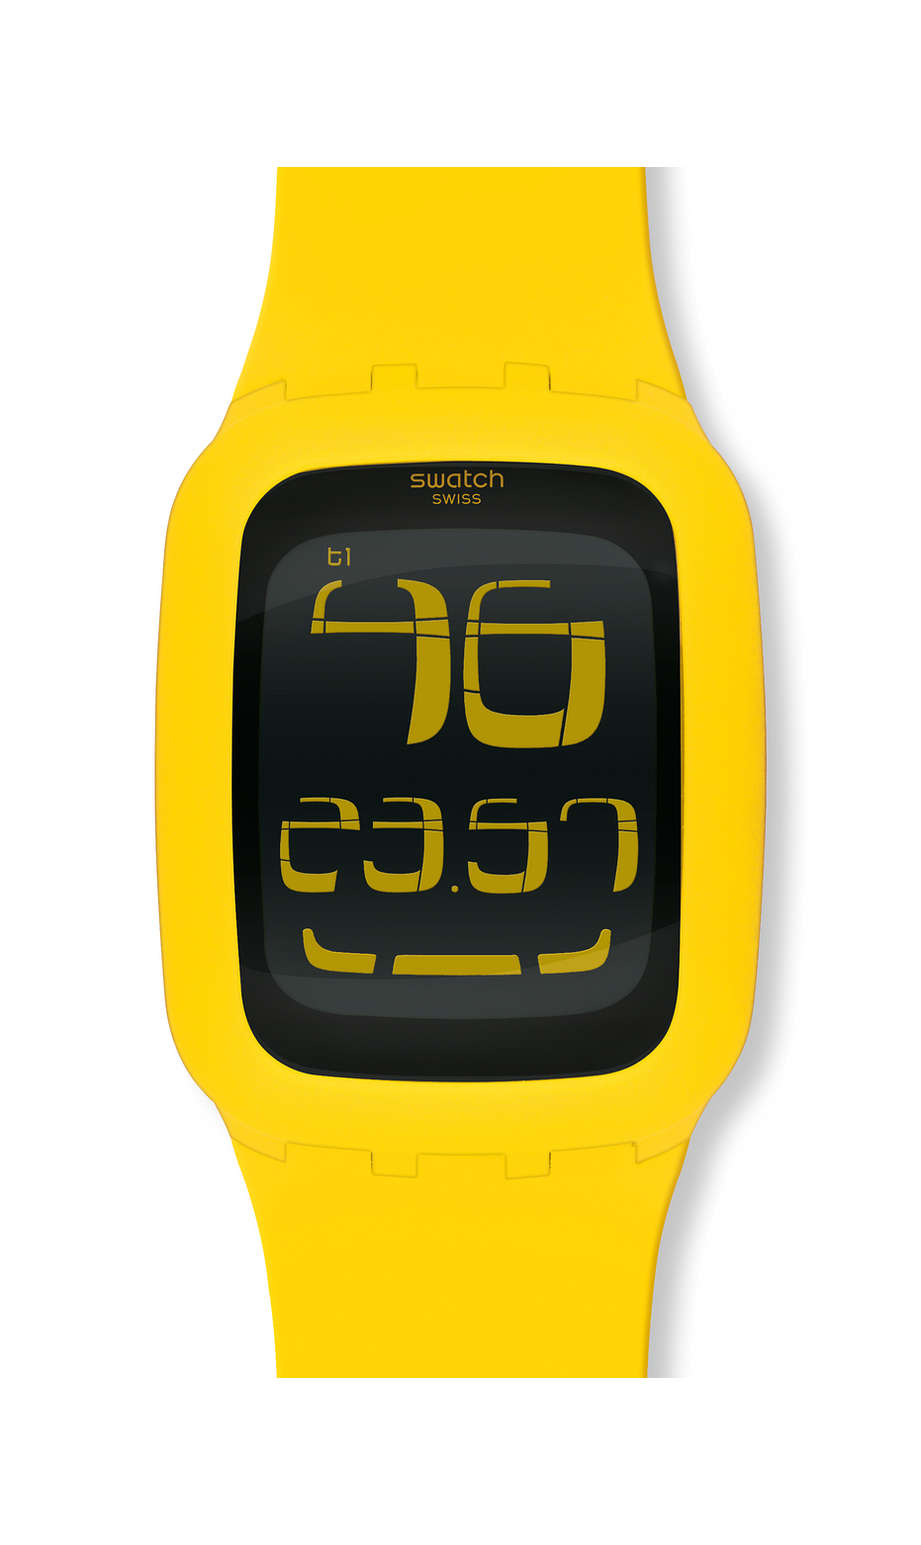 Swatch - SWATCH TOUCH YELLOW - 1